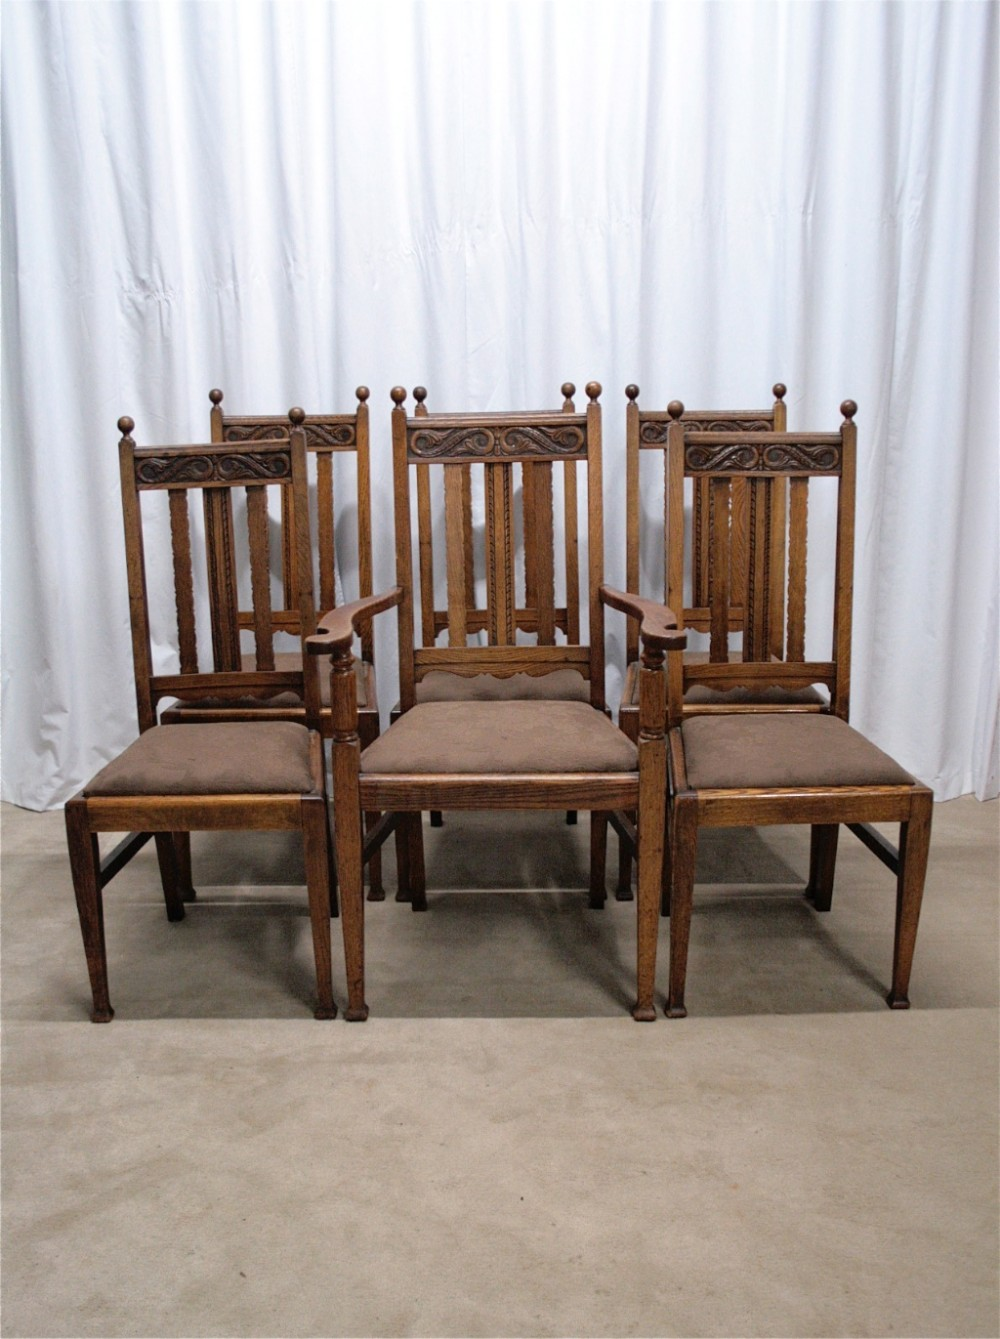 six edwardian oak dining chairs - Six Edwardian Oak Dining Chairs 258759 Sellingantiques.co.uk